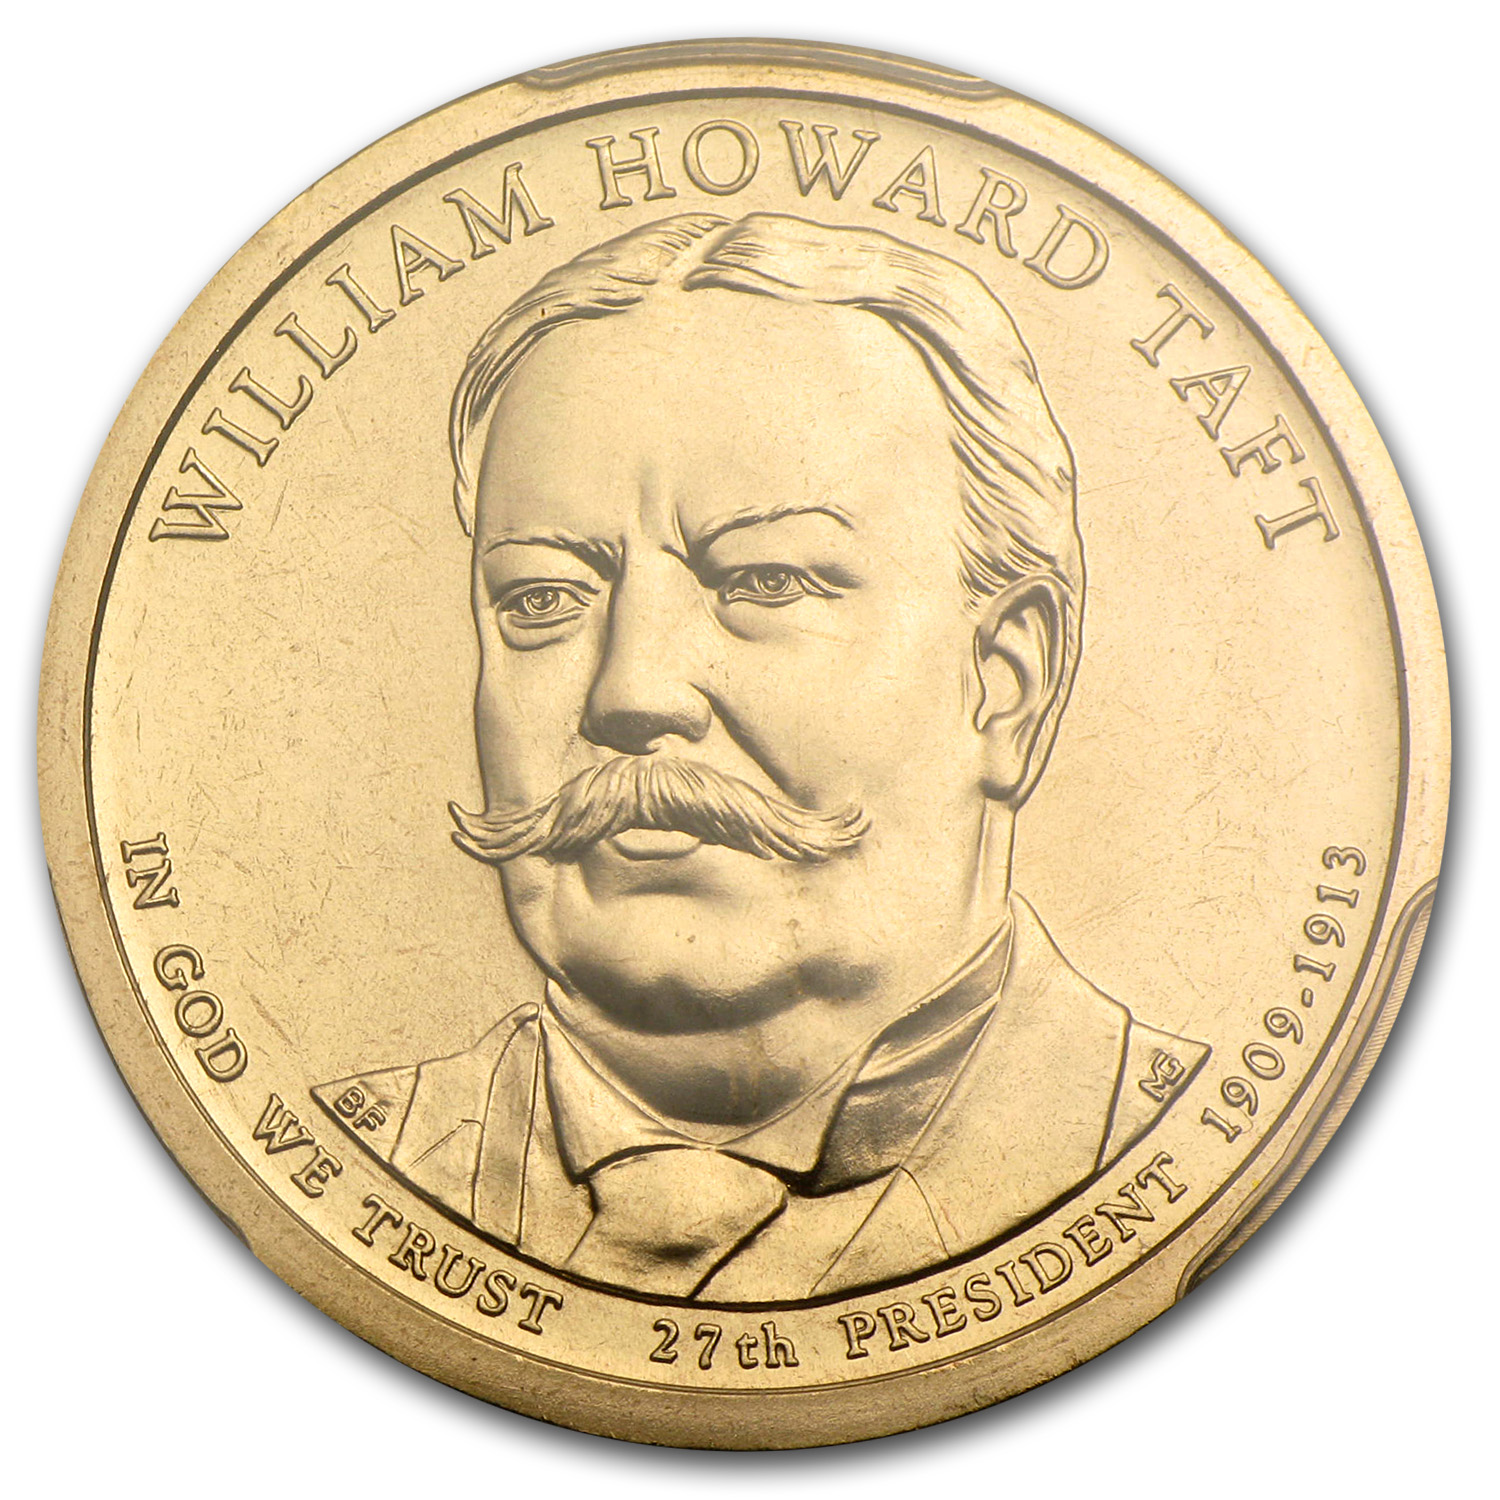 2013-P William H. Taft Position A Presidential Dollar MS-68 PCGS